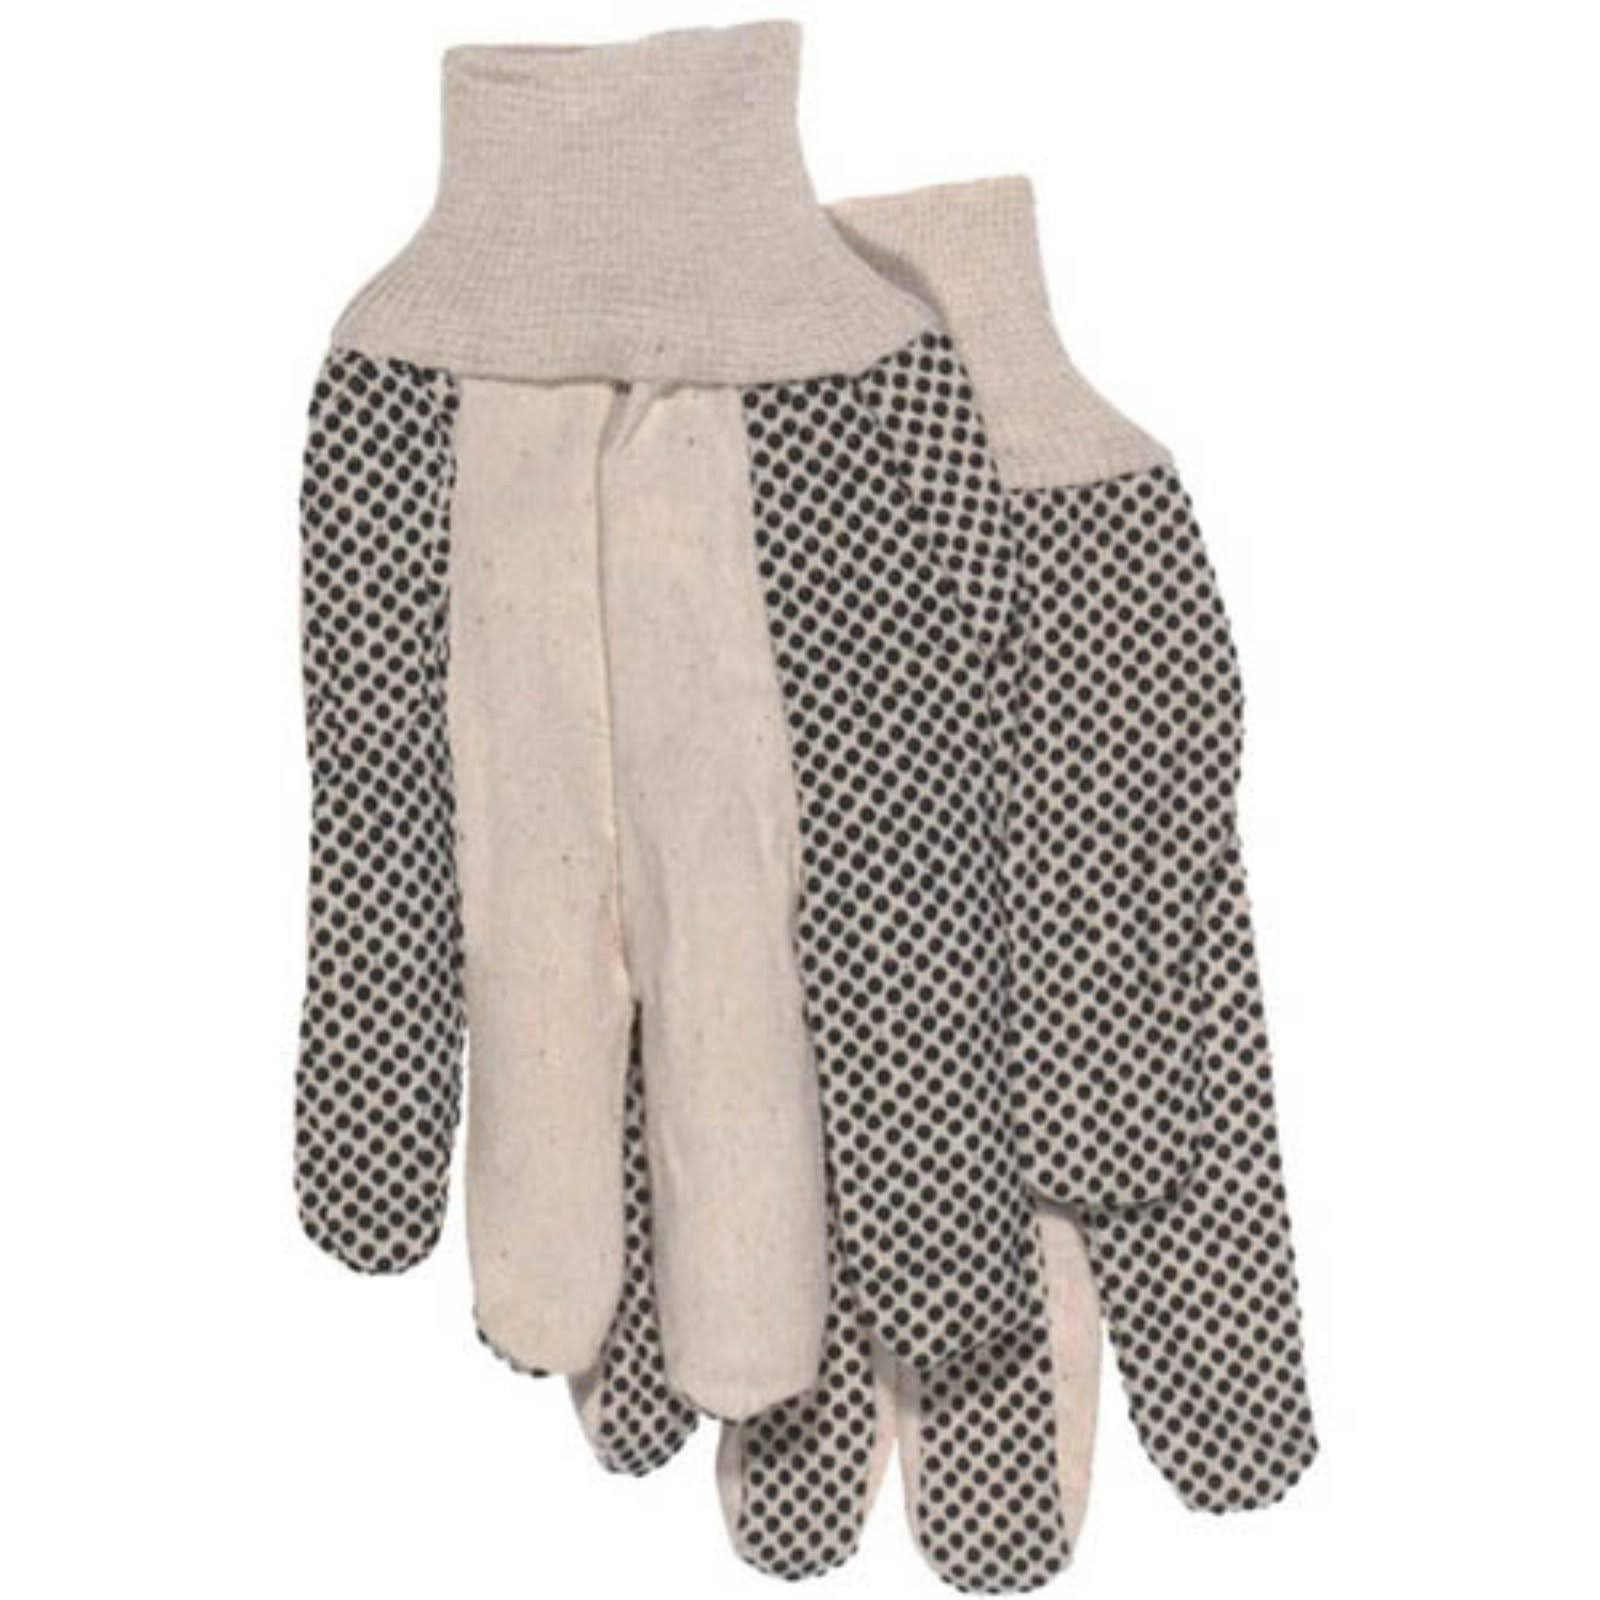 Boss 4011 Plastic Dot Work Gloves - Large, Cotton Blend